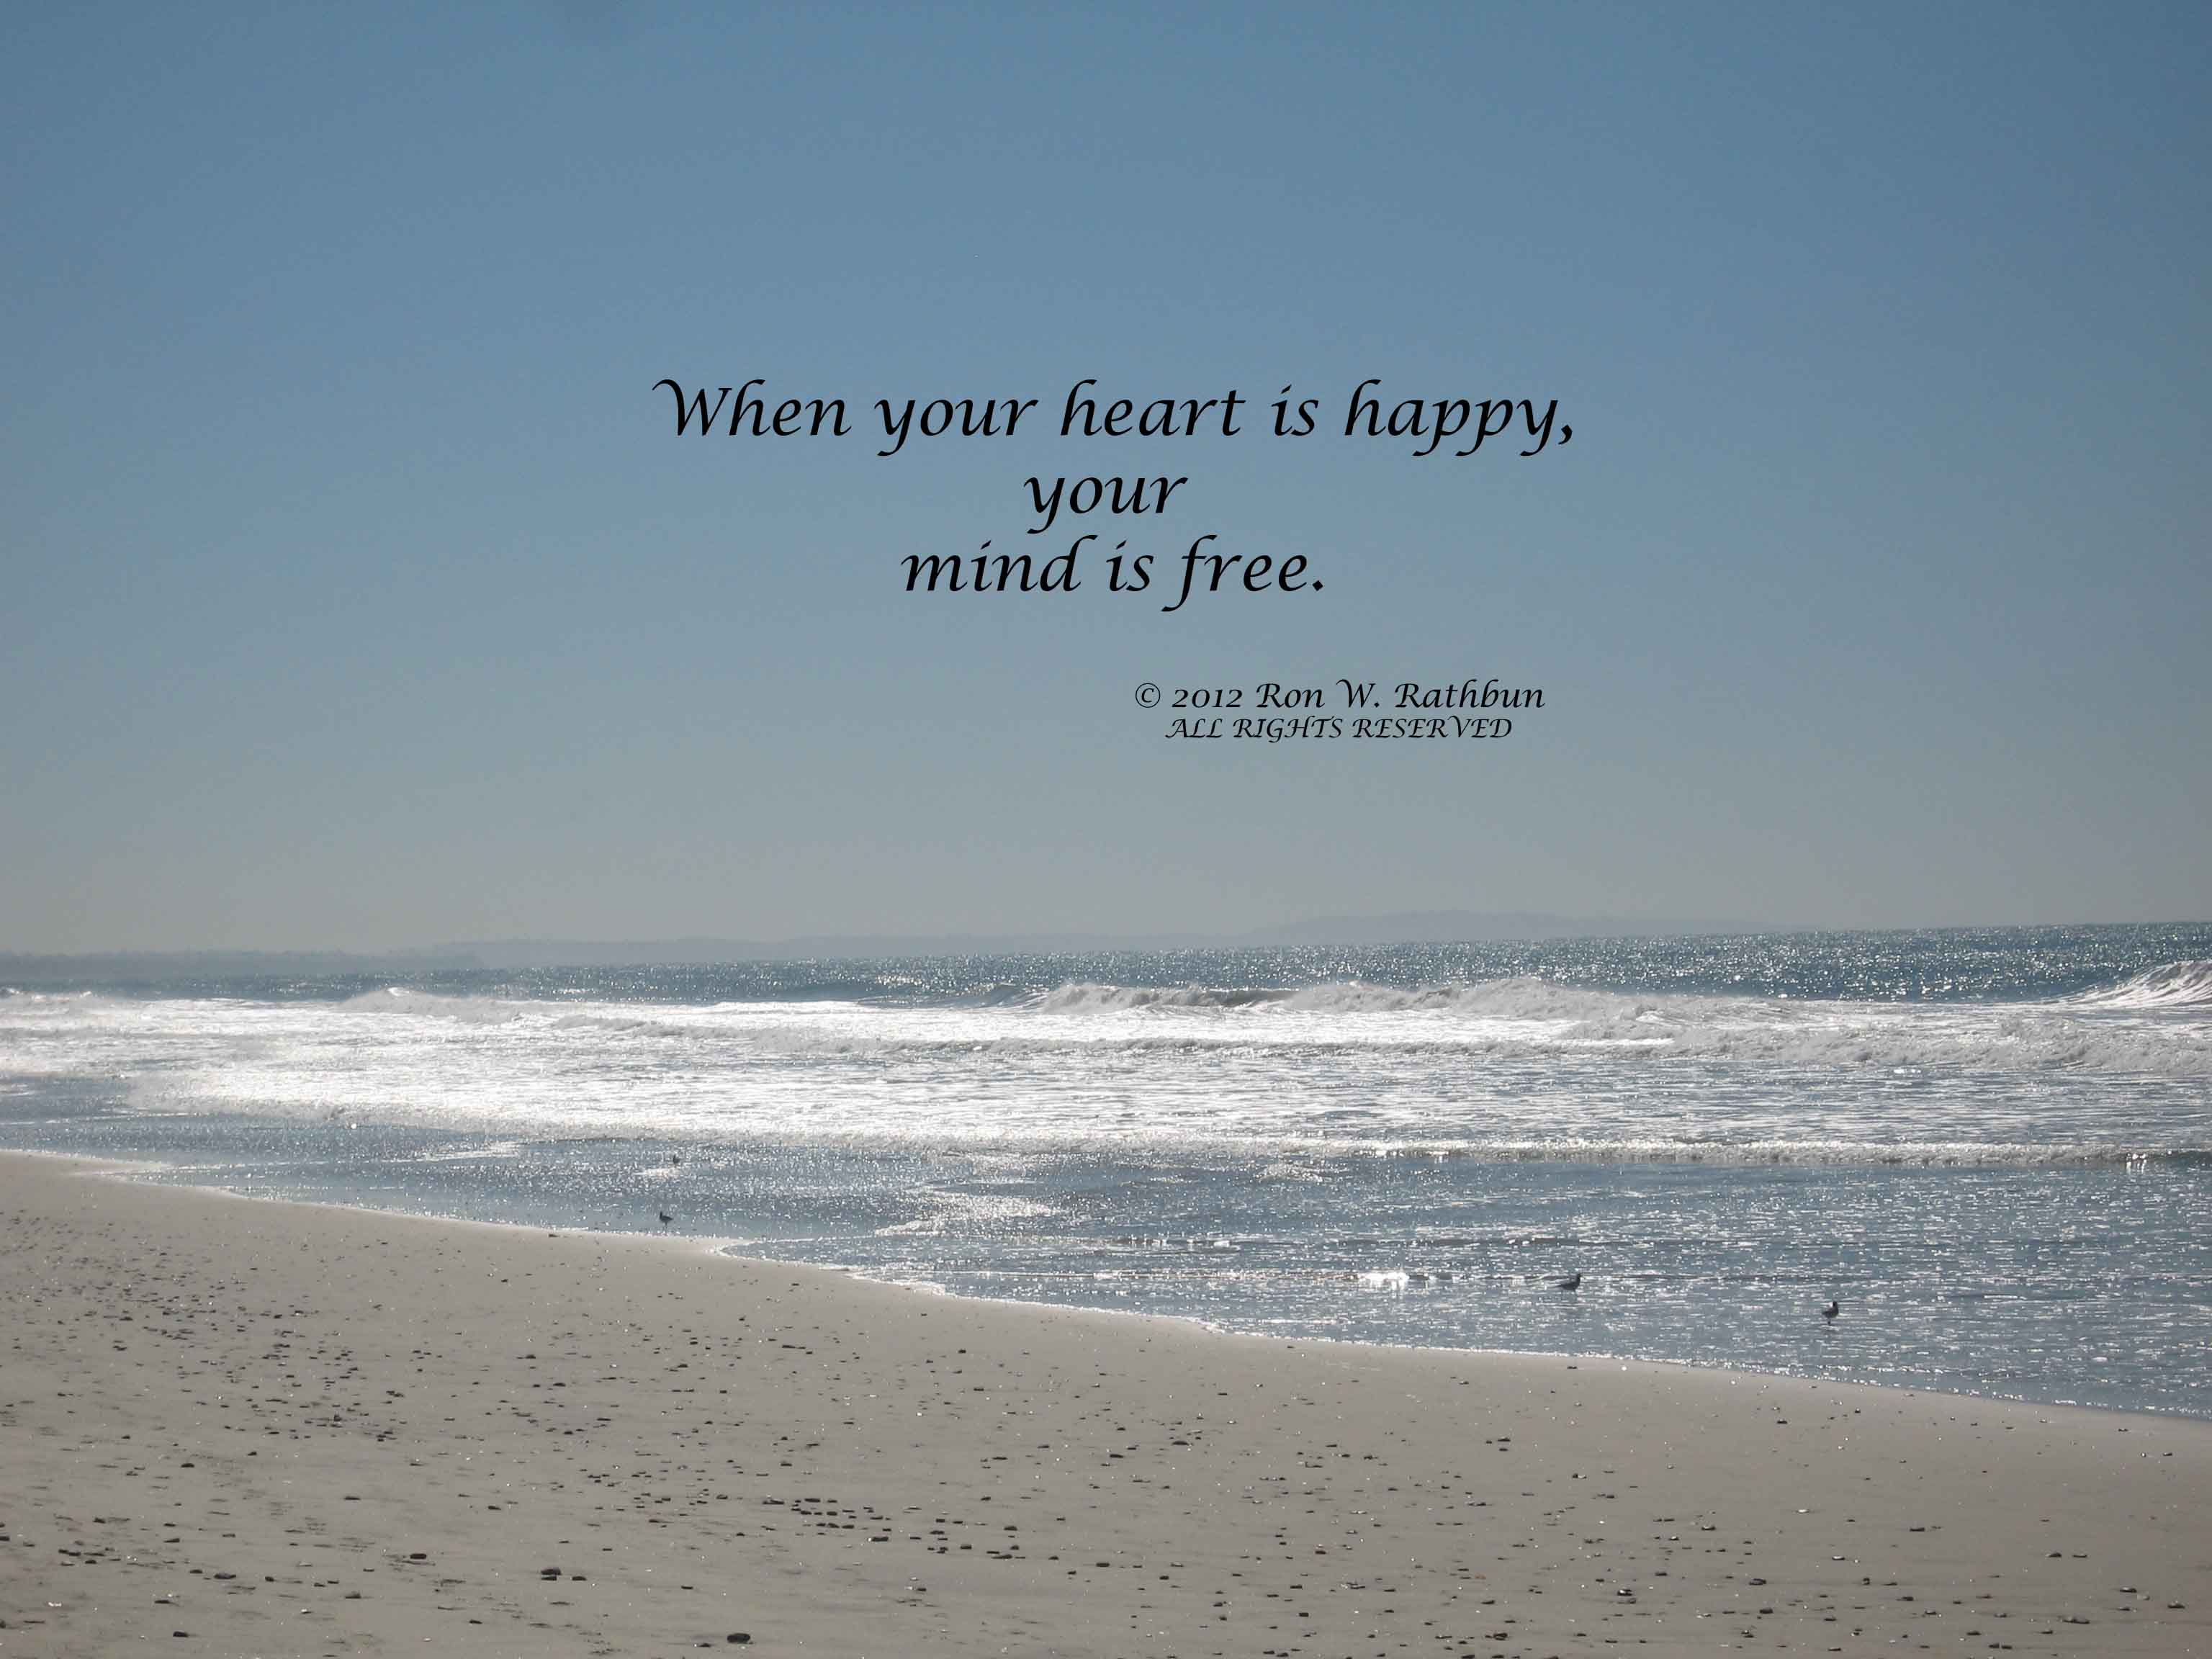 When Your Heart Is Happy Your Mind Is Free